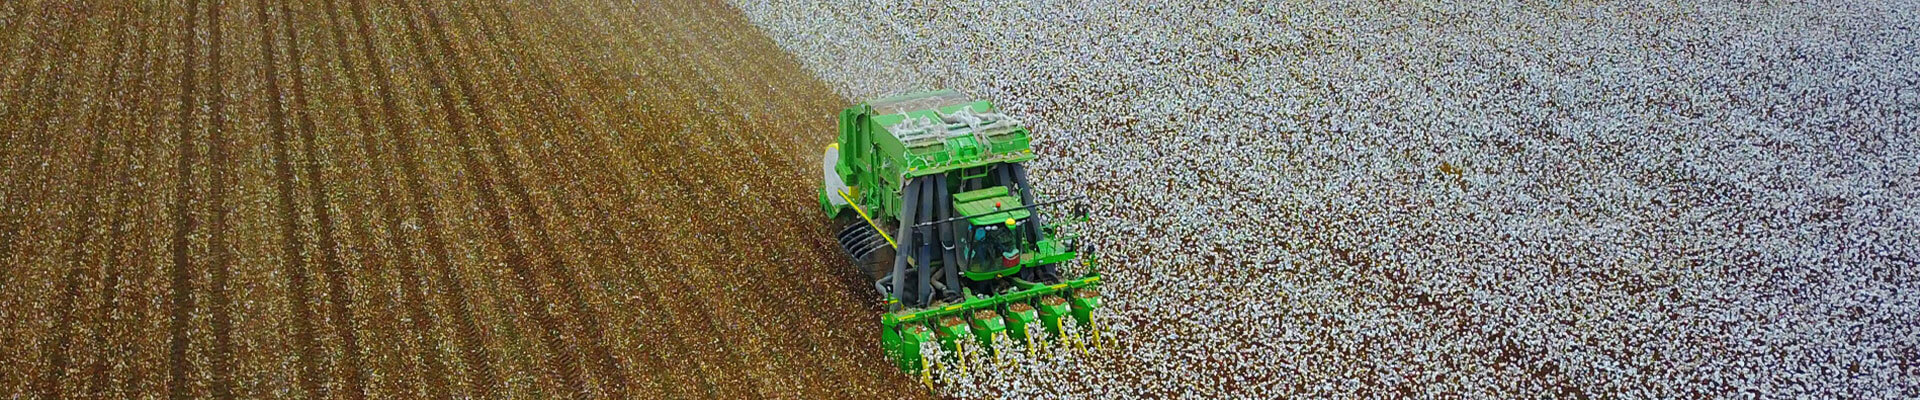 A Cotton Picking Machine Harvesting Cotton